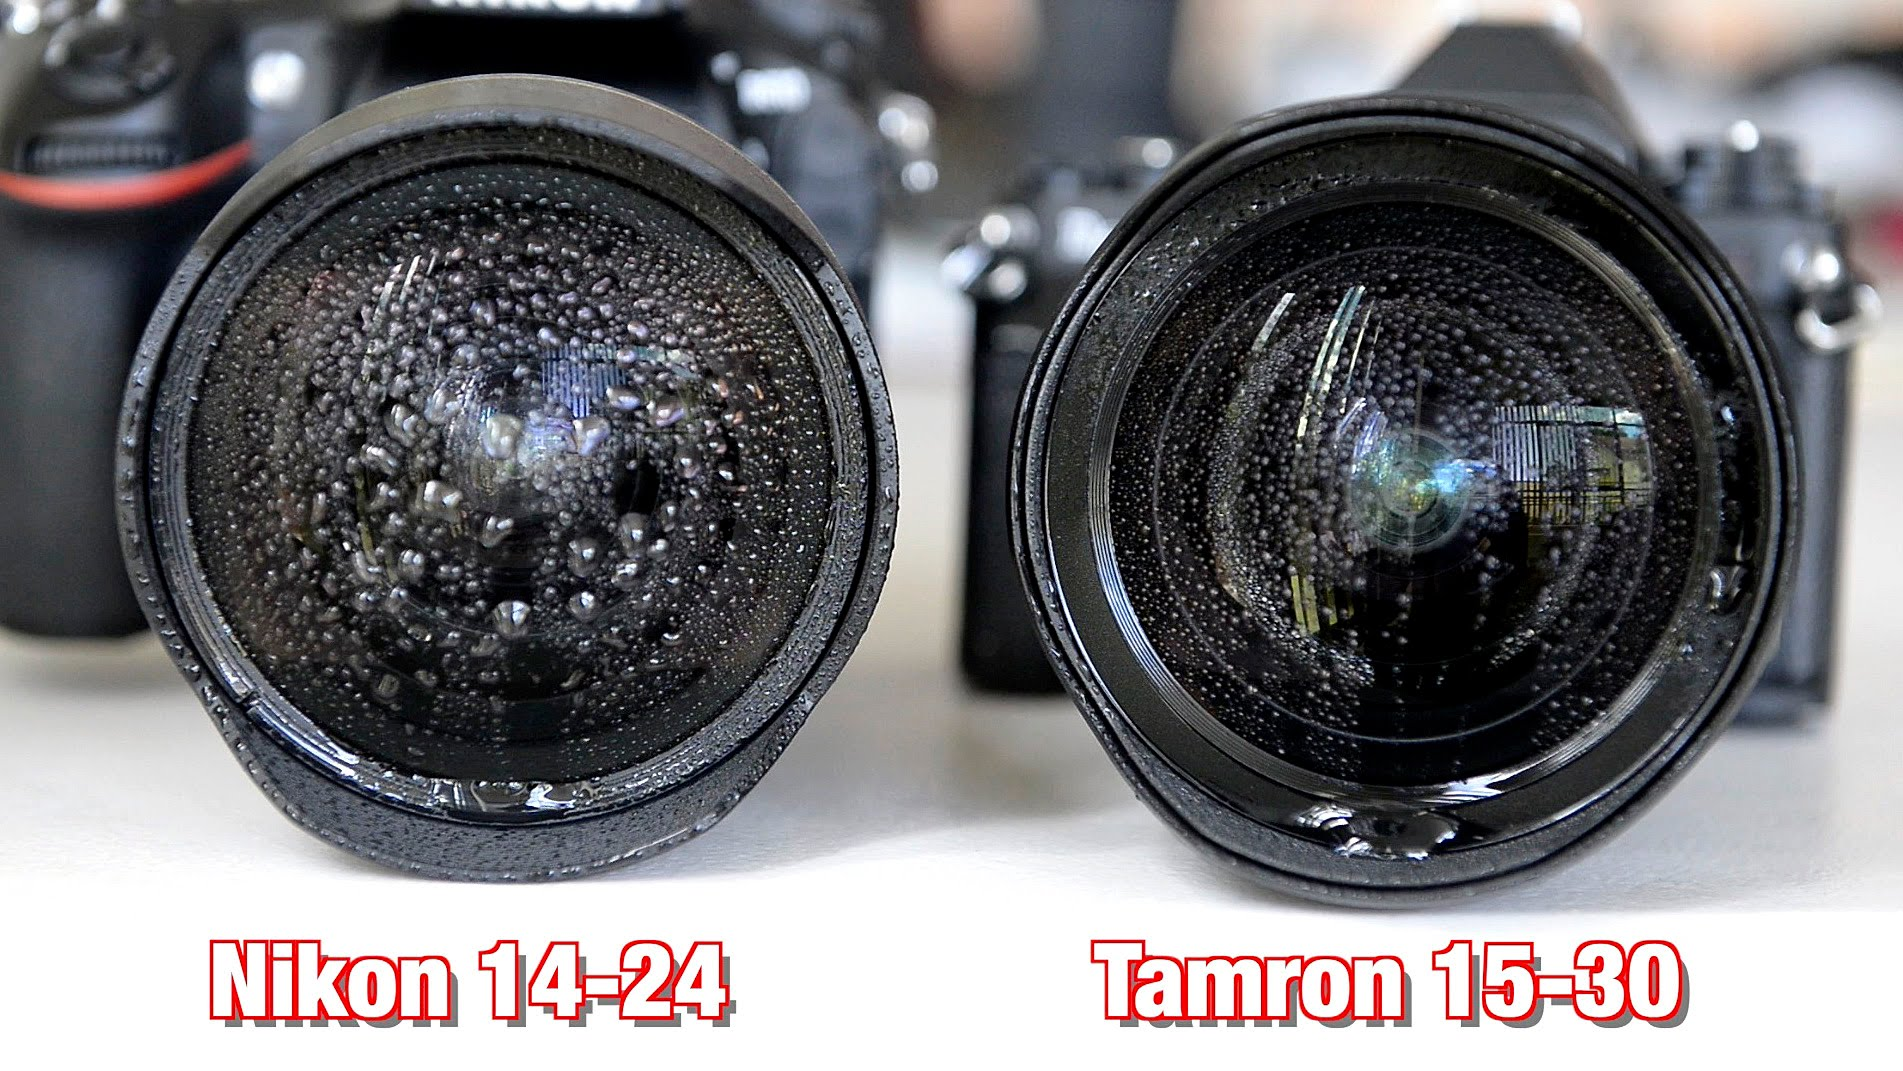 tamron 15 30mm f2 8 vc vs nikon af s nikkor 14 24mm f 2. Black Bedroom Furniture Sets. Home Design Ideas